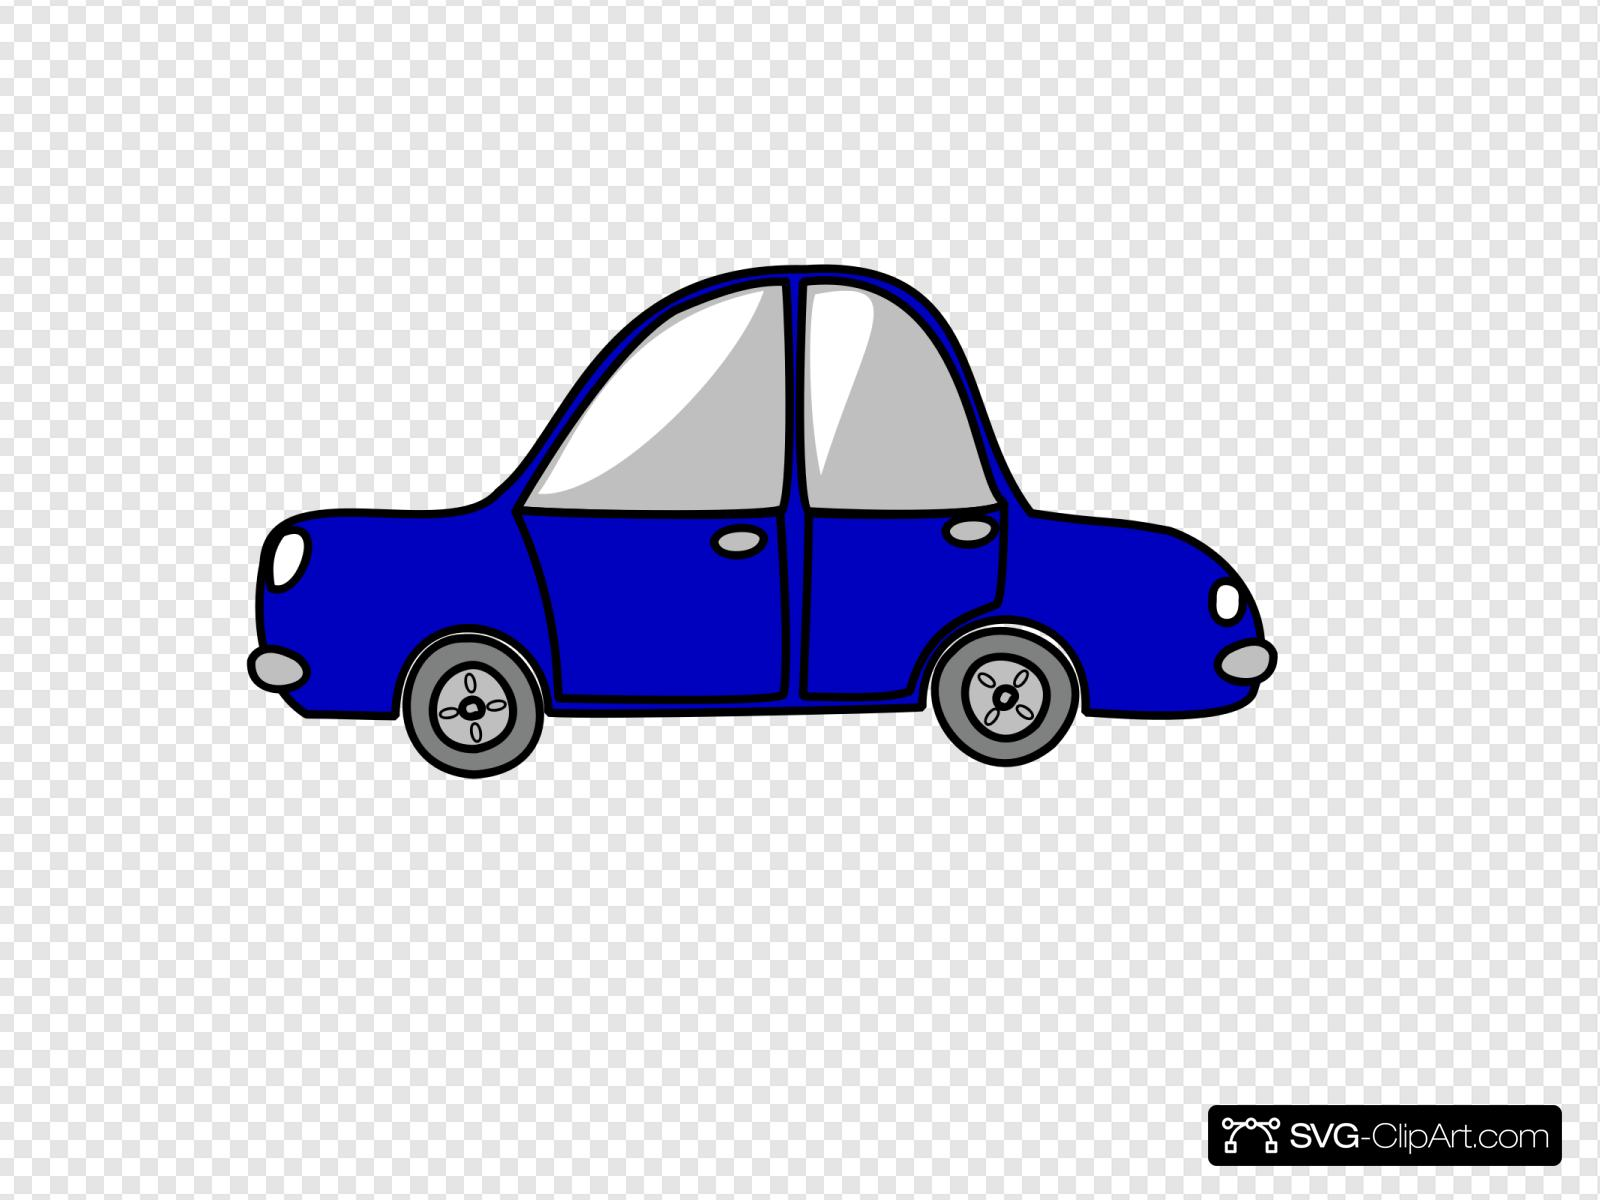 Blue Car Very Small Clip art, Icon and SVG.